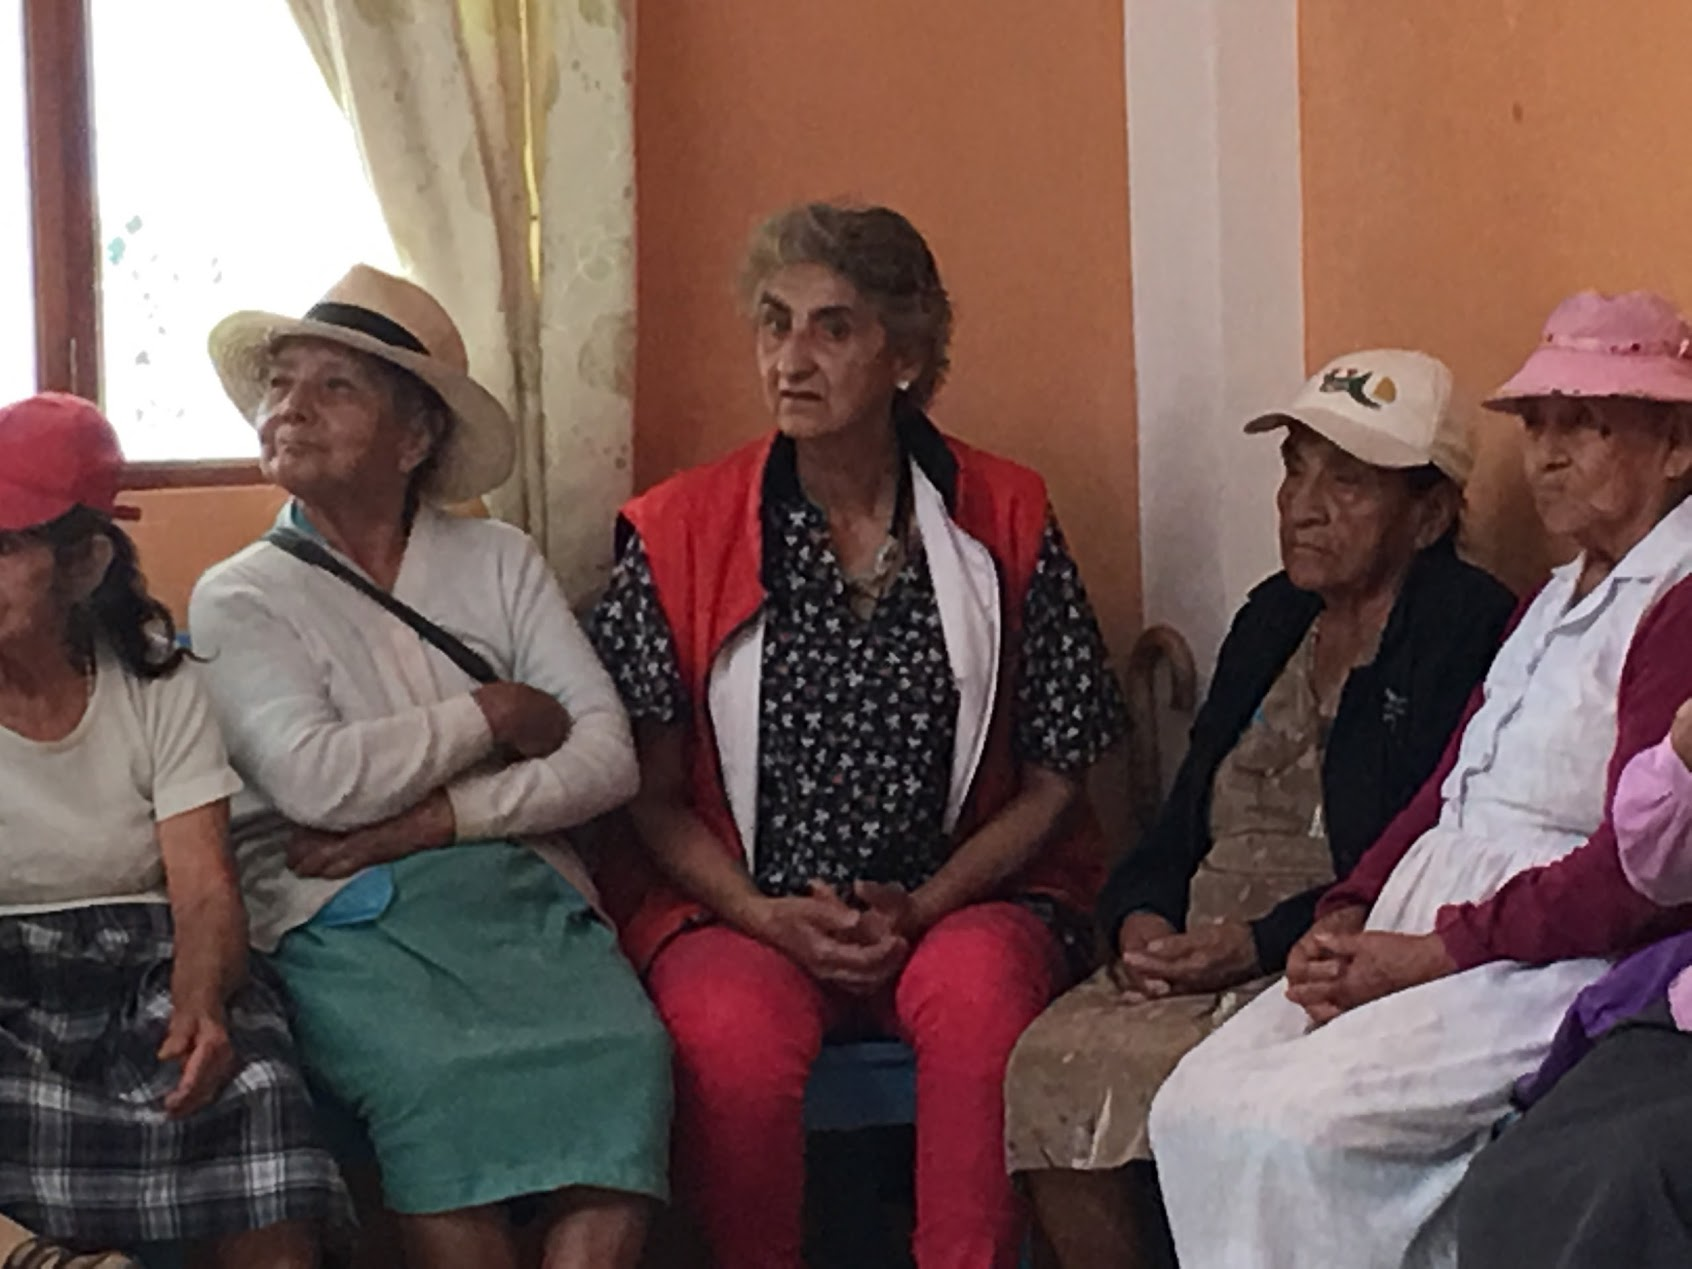 Influx of foreigners in Vilcabamba, Ecuador - Understanding the perspectives of older residents about the influx of foreigners coming mostly from developed countries to live in their community.